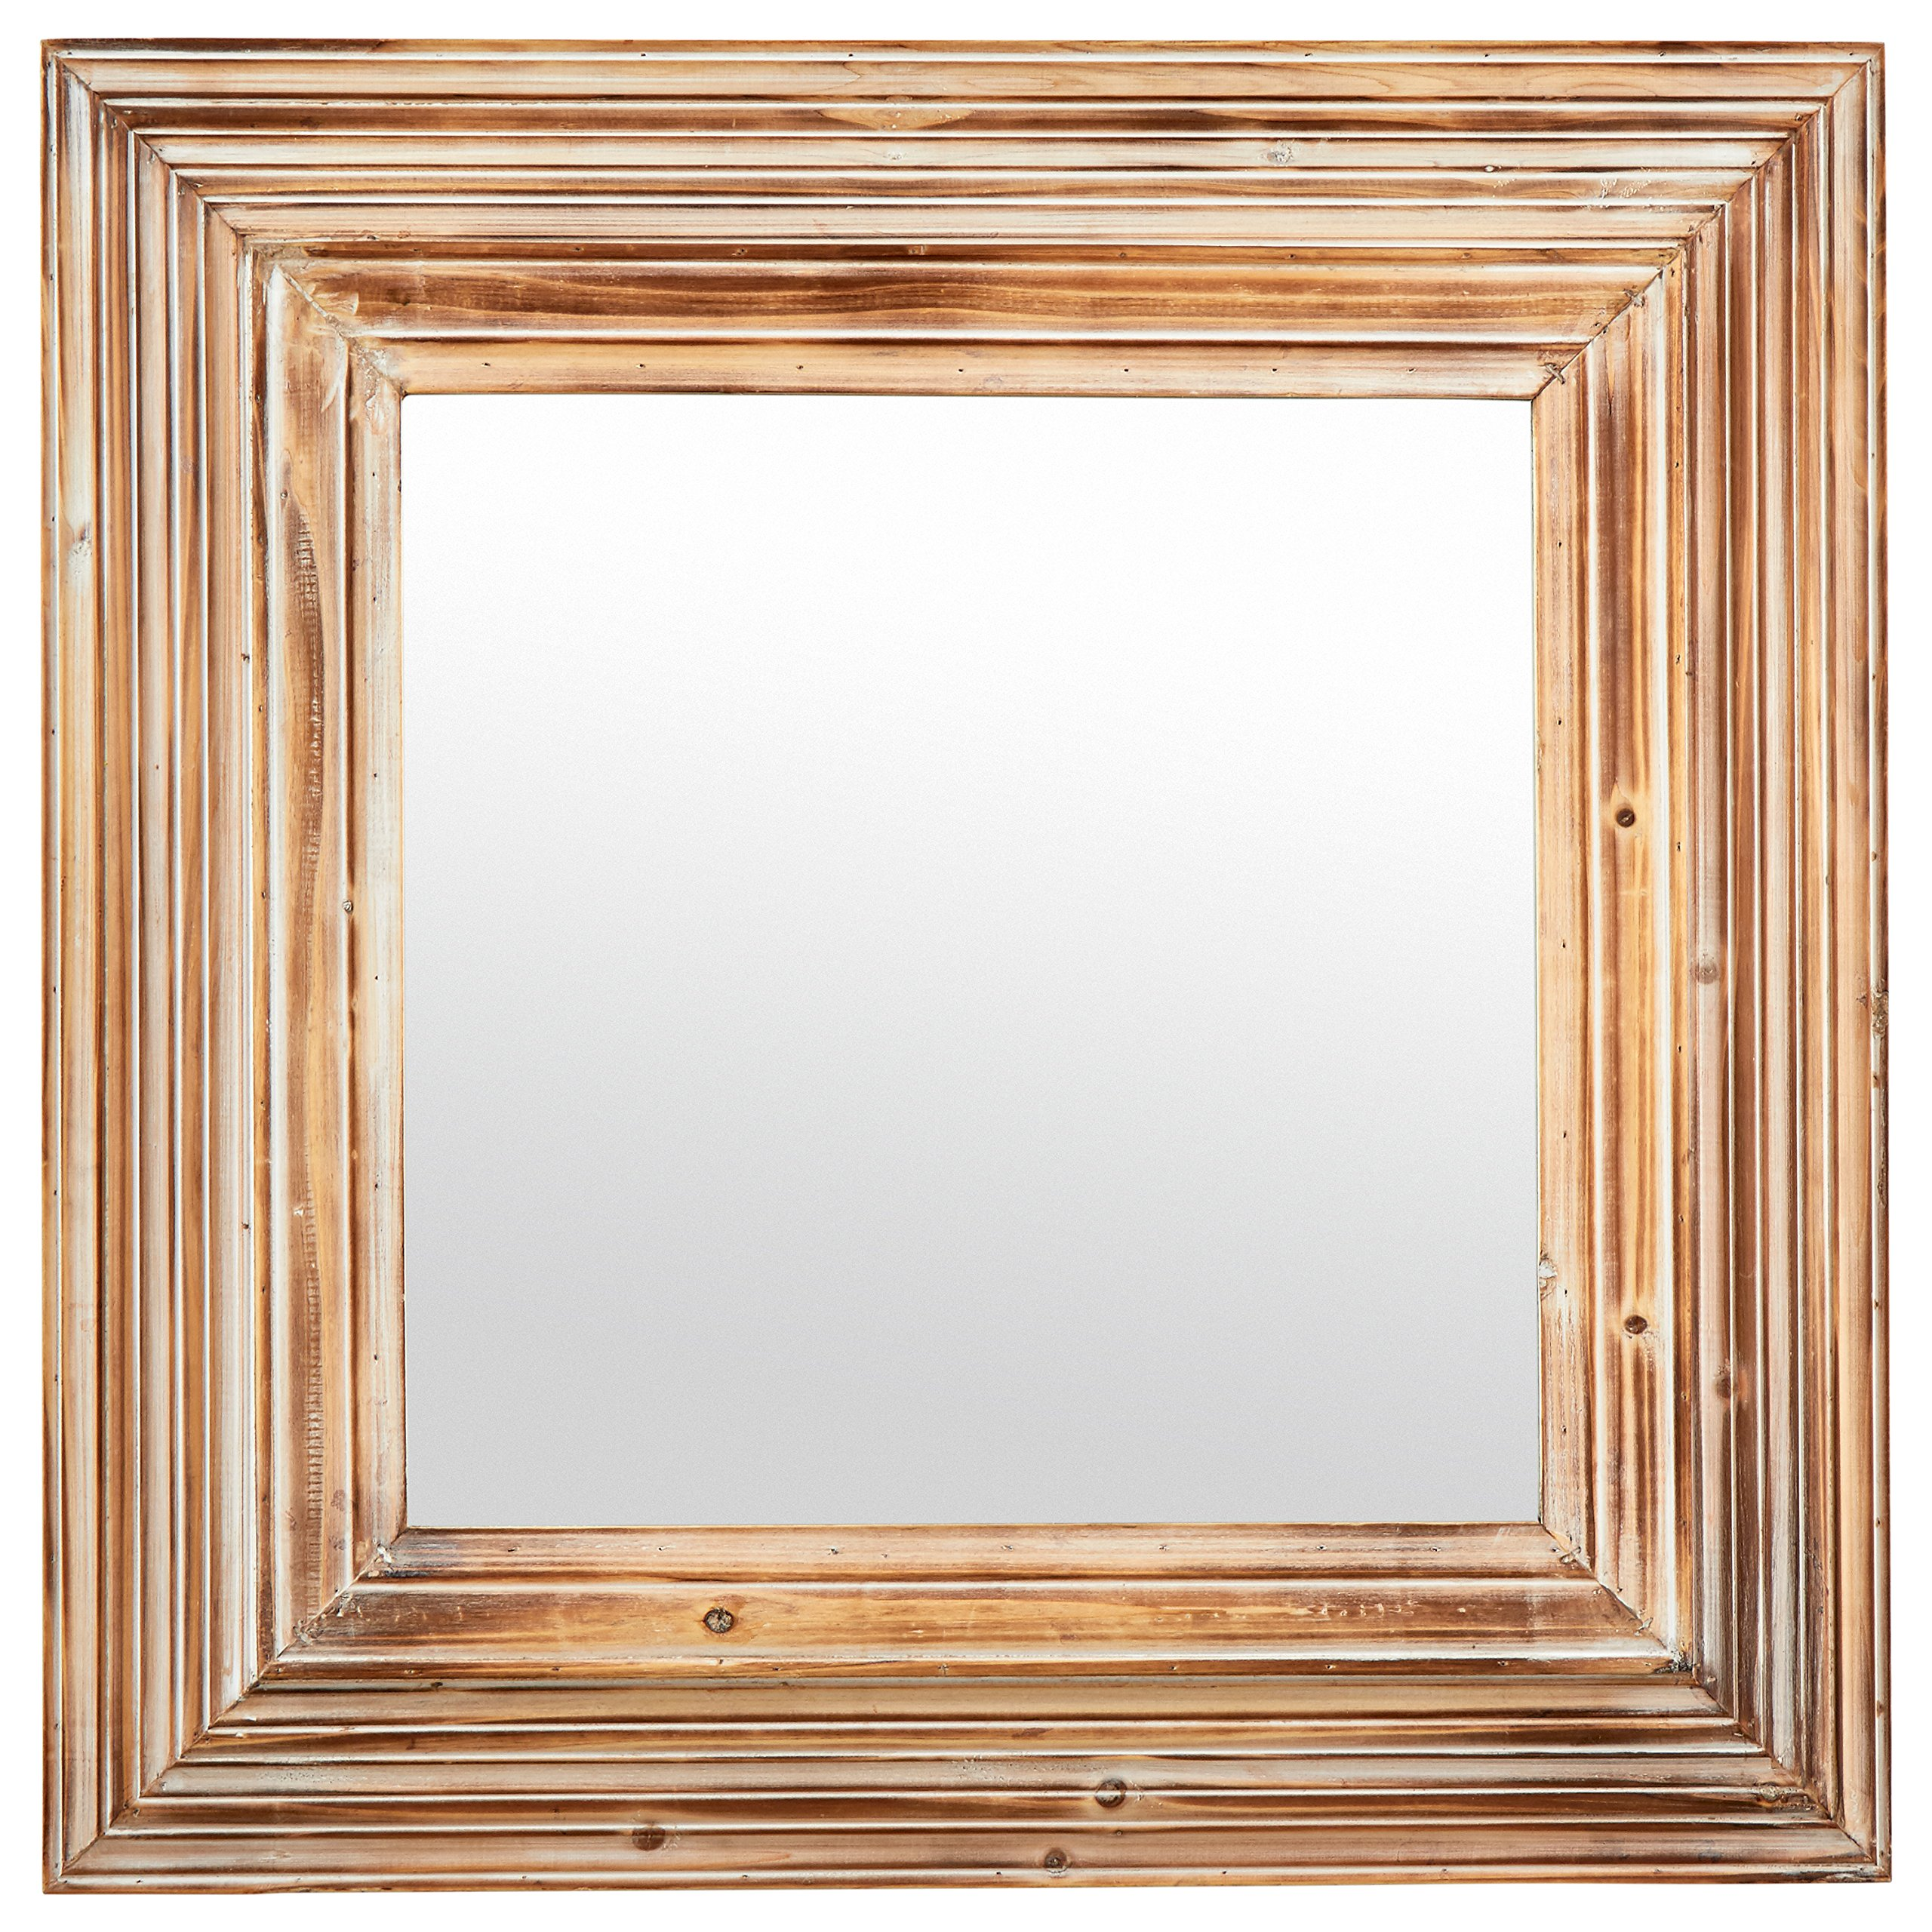 Stone & Beam Vintage-Look Square Mirror, 39.5''H, Tan and White